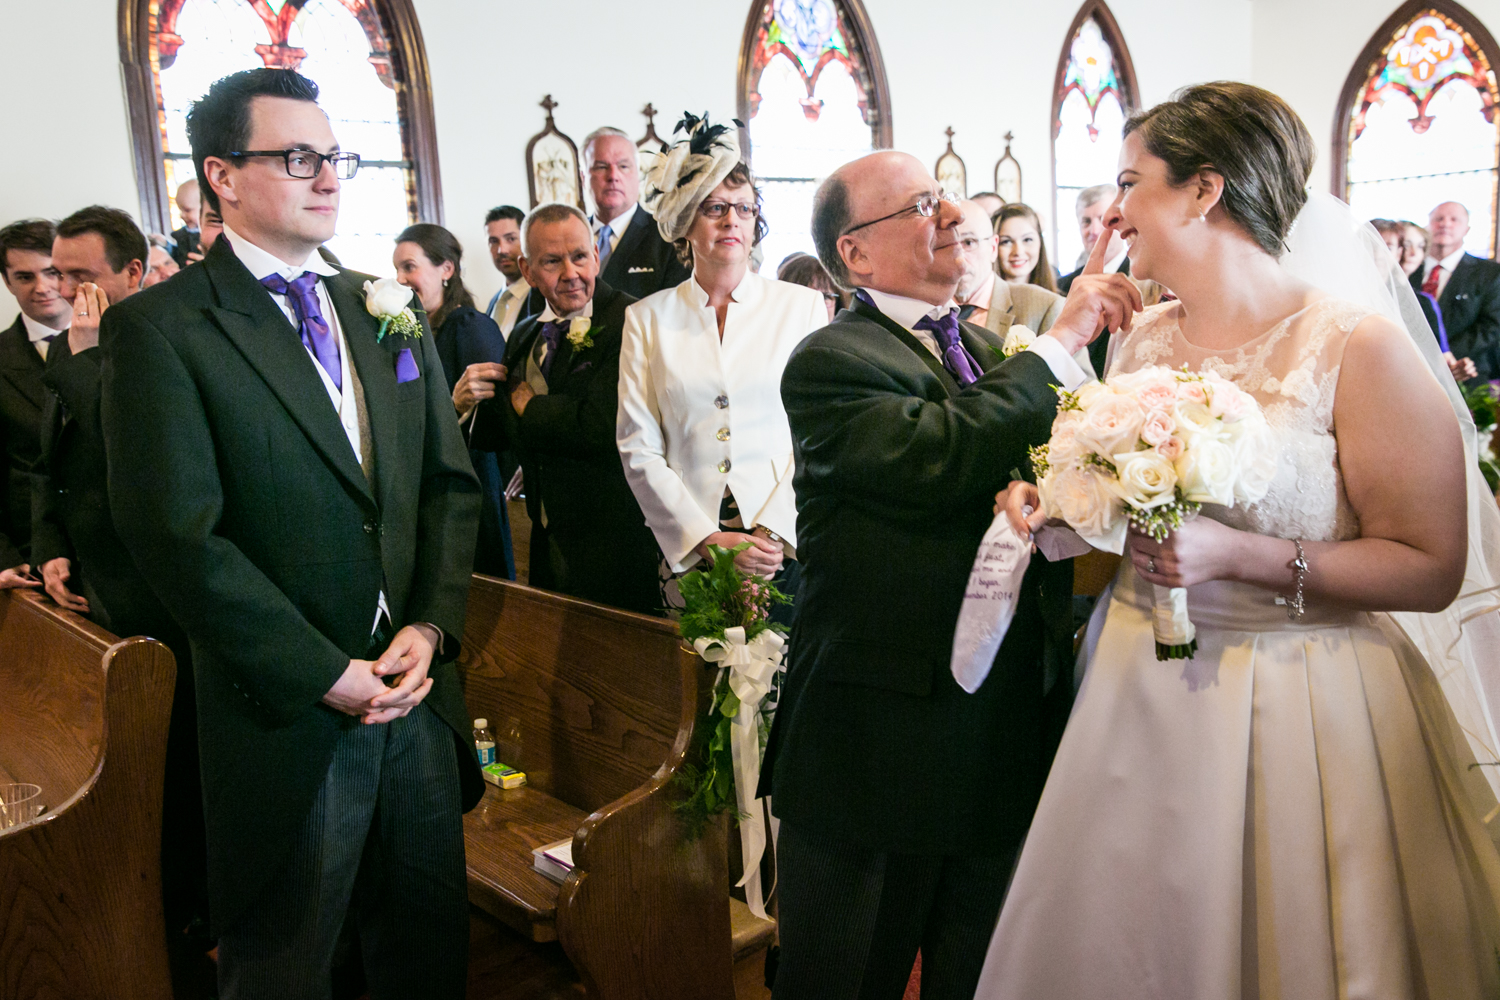 Father giving bride away during ceremony at St. James Church